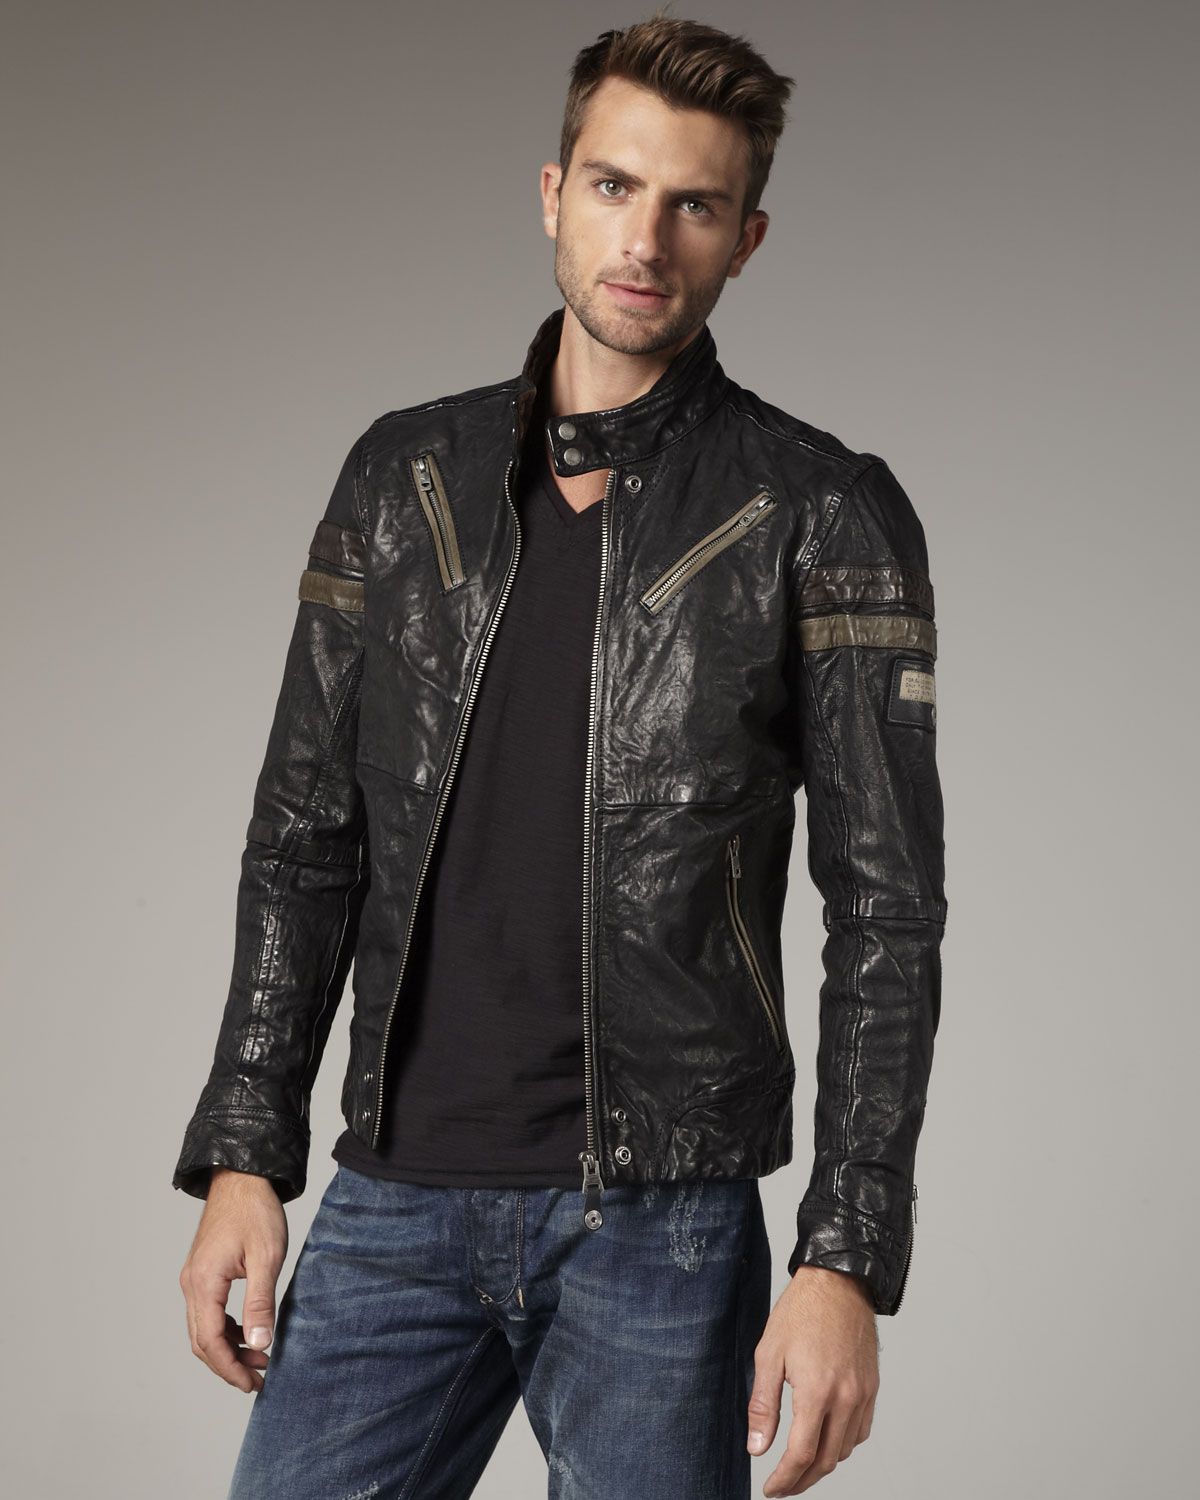 Mens jackets diesel – New Fashion Photo Blog